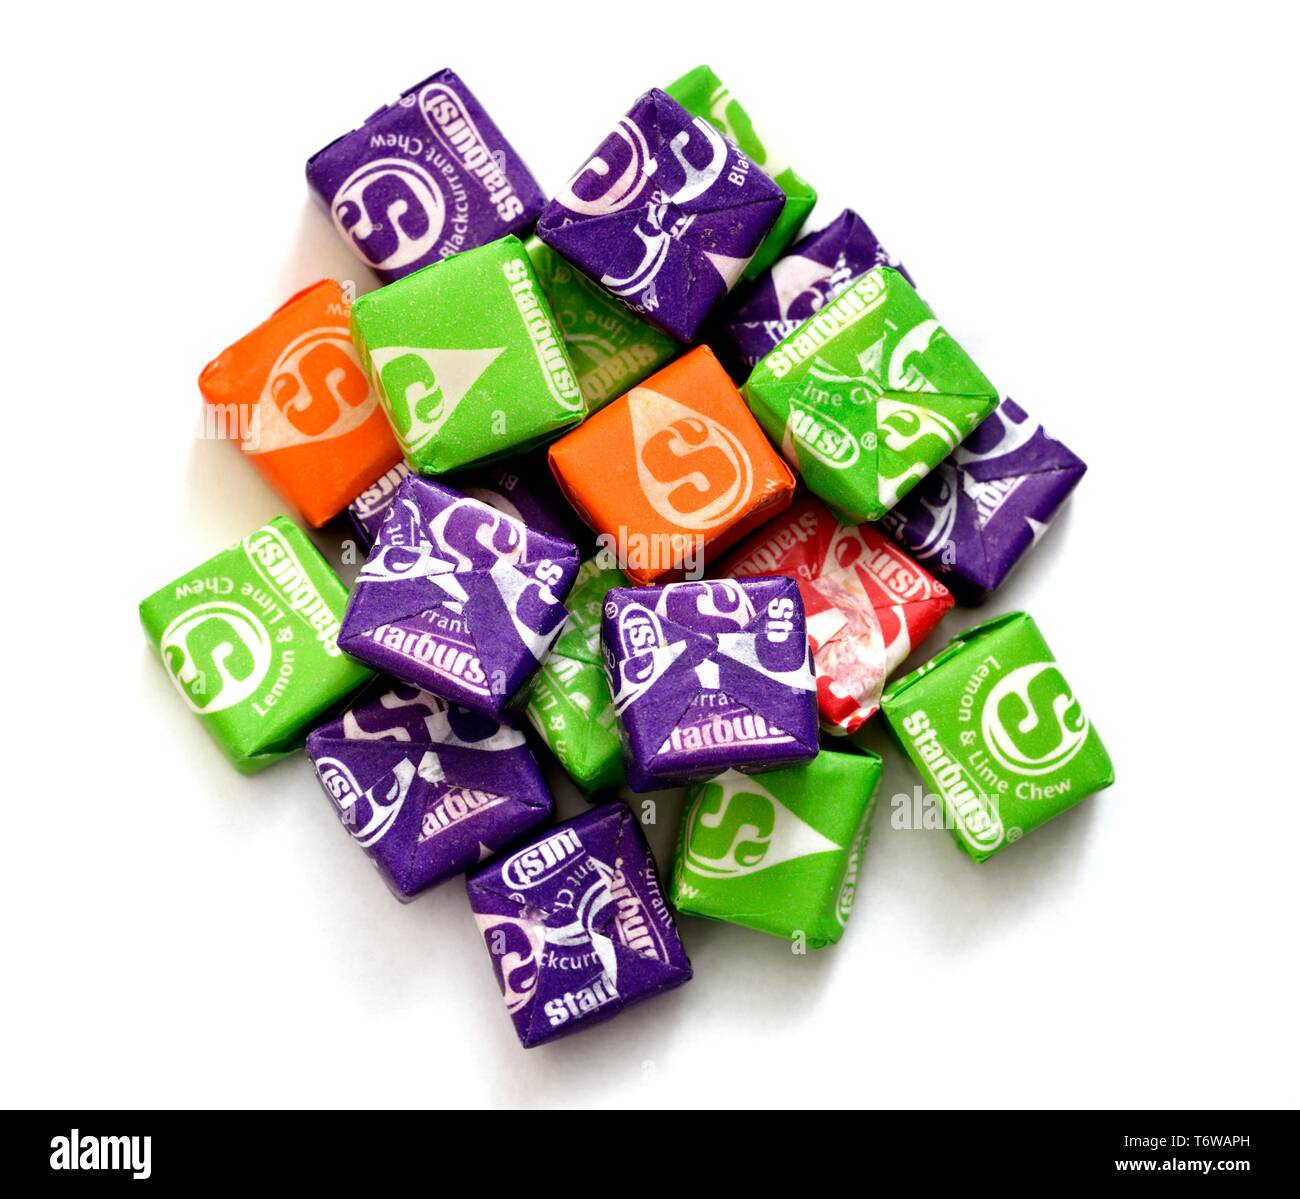 Starburst chewy sweets, white background - Stock Image